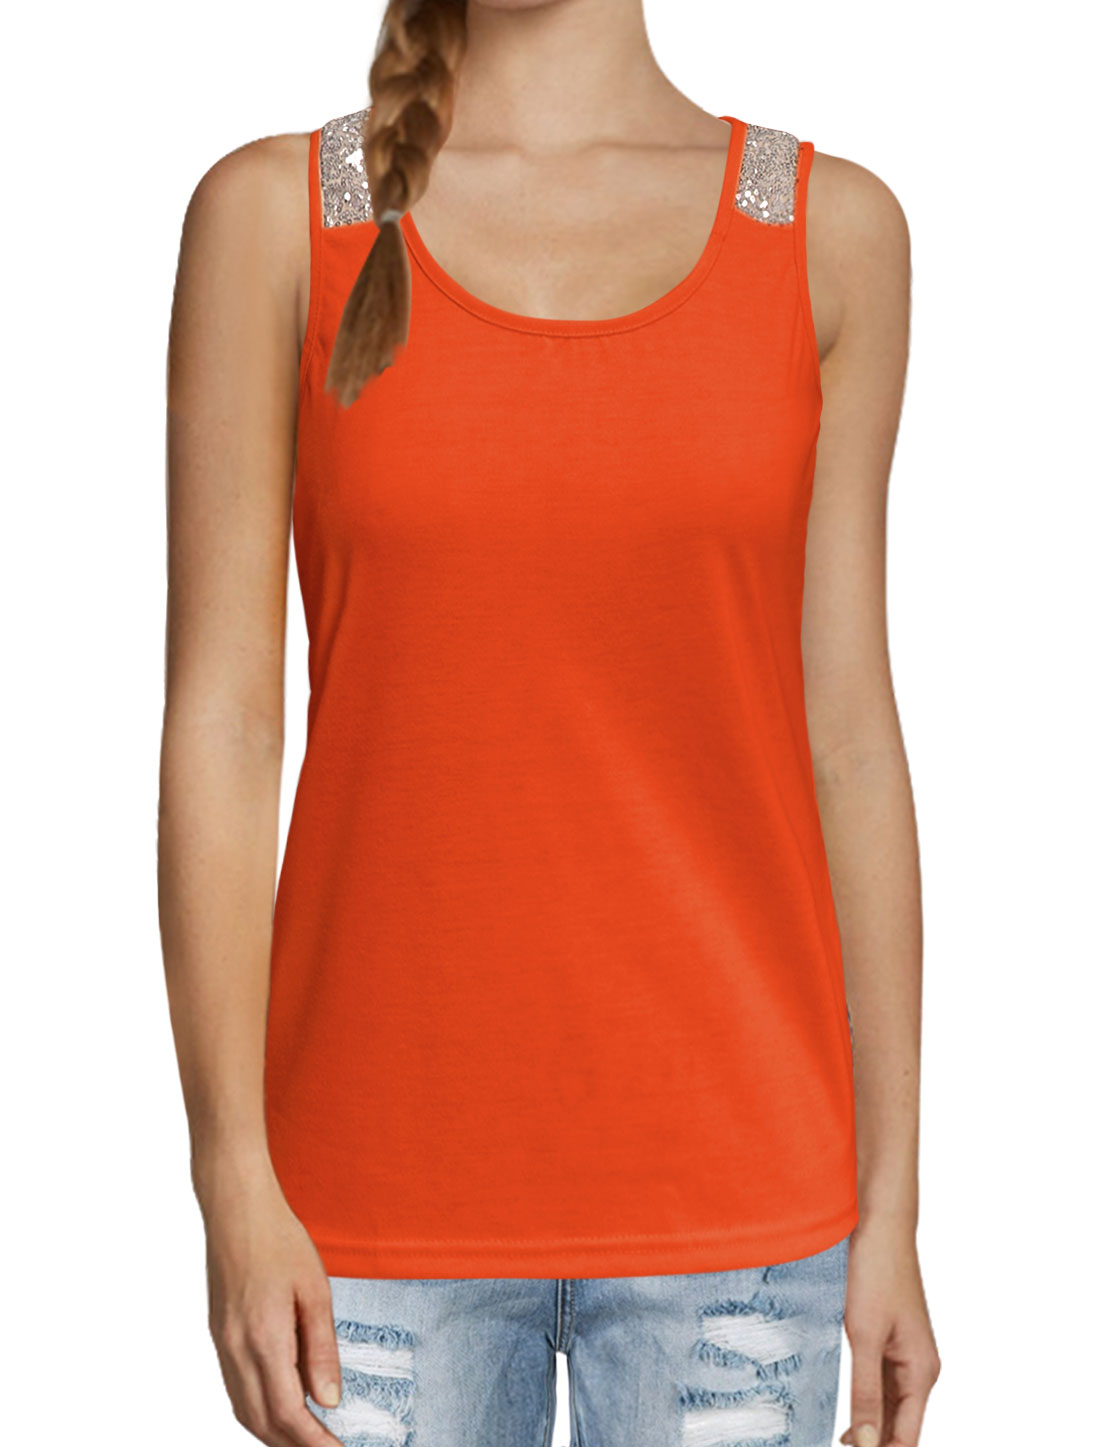 Women Scoop Neckline Sequin Embellished Tank Top Orange M